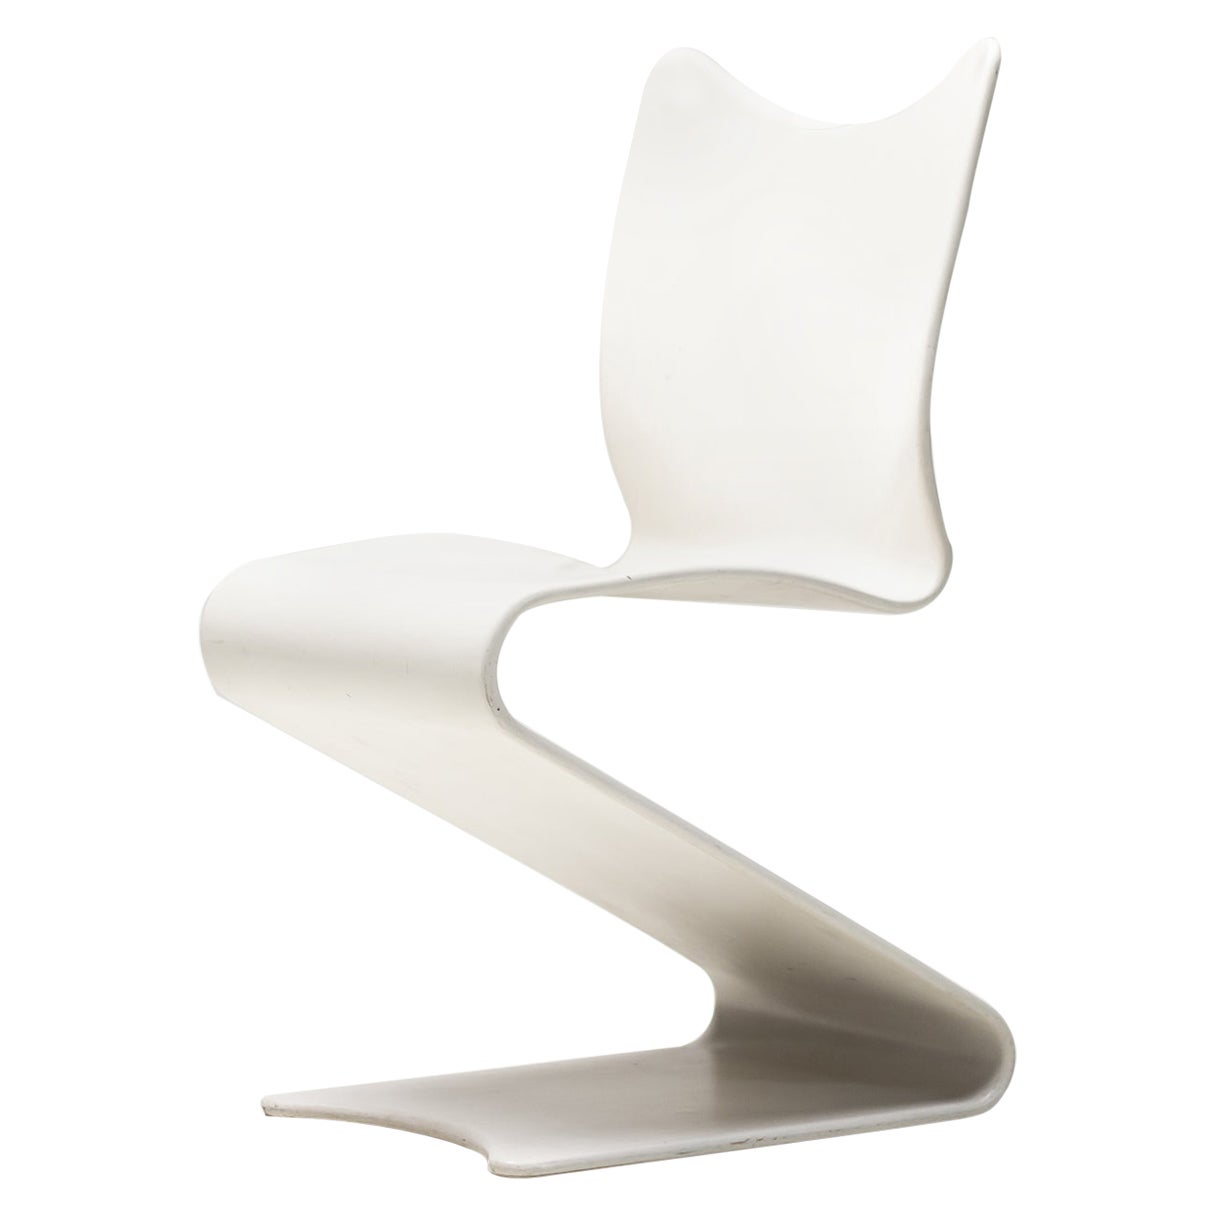 S-Chair No. 275 by Verner Panton